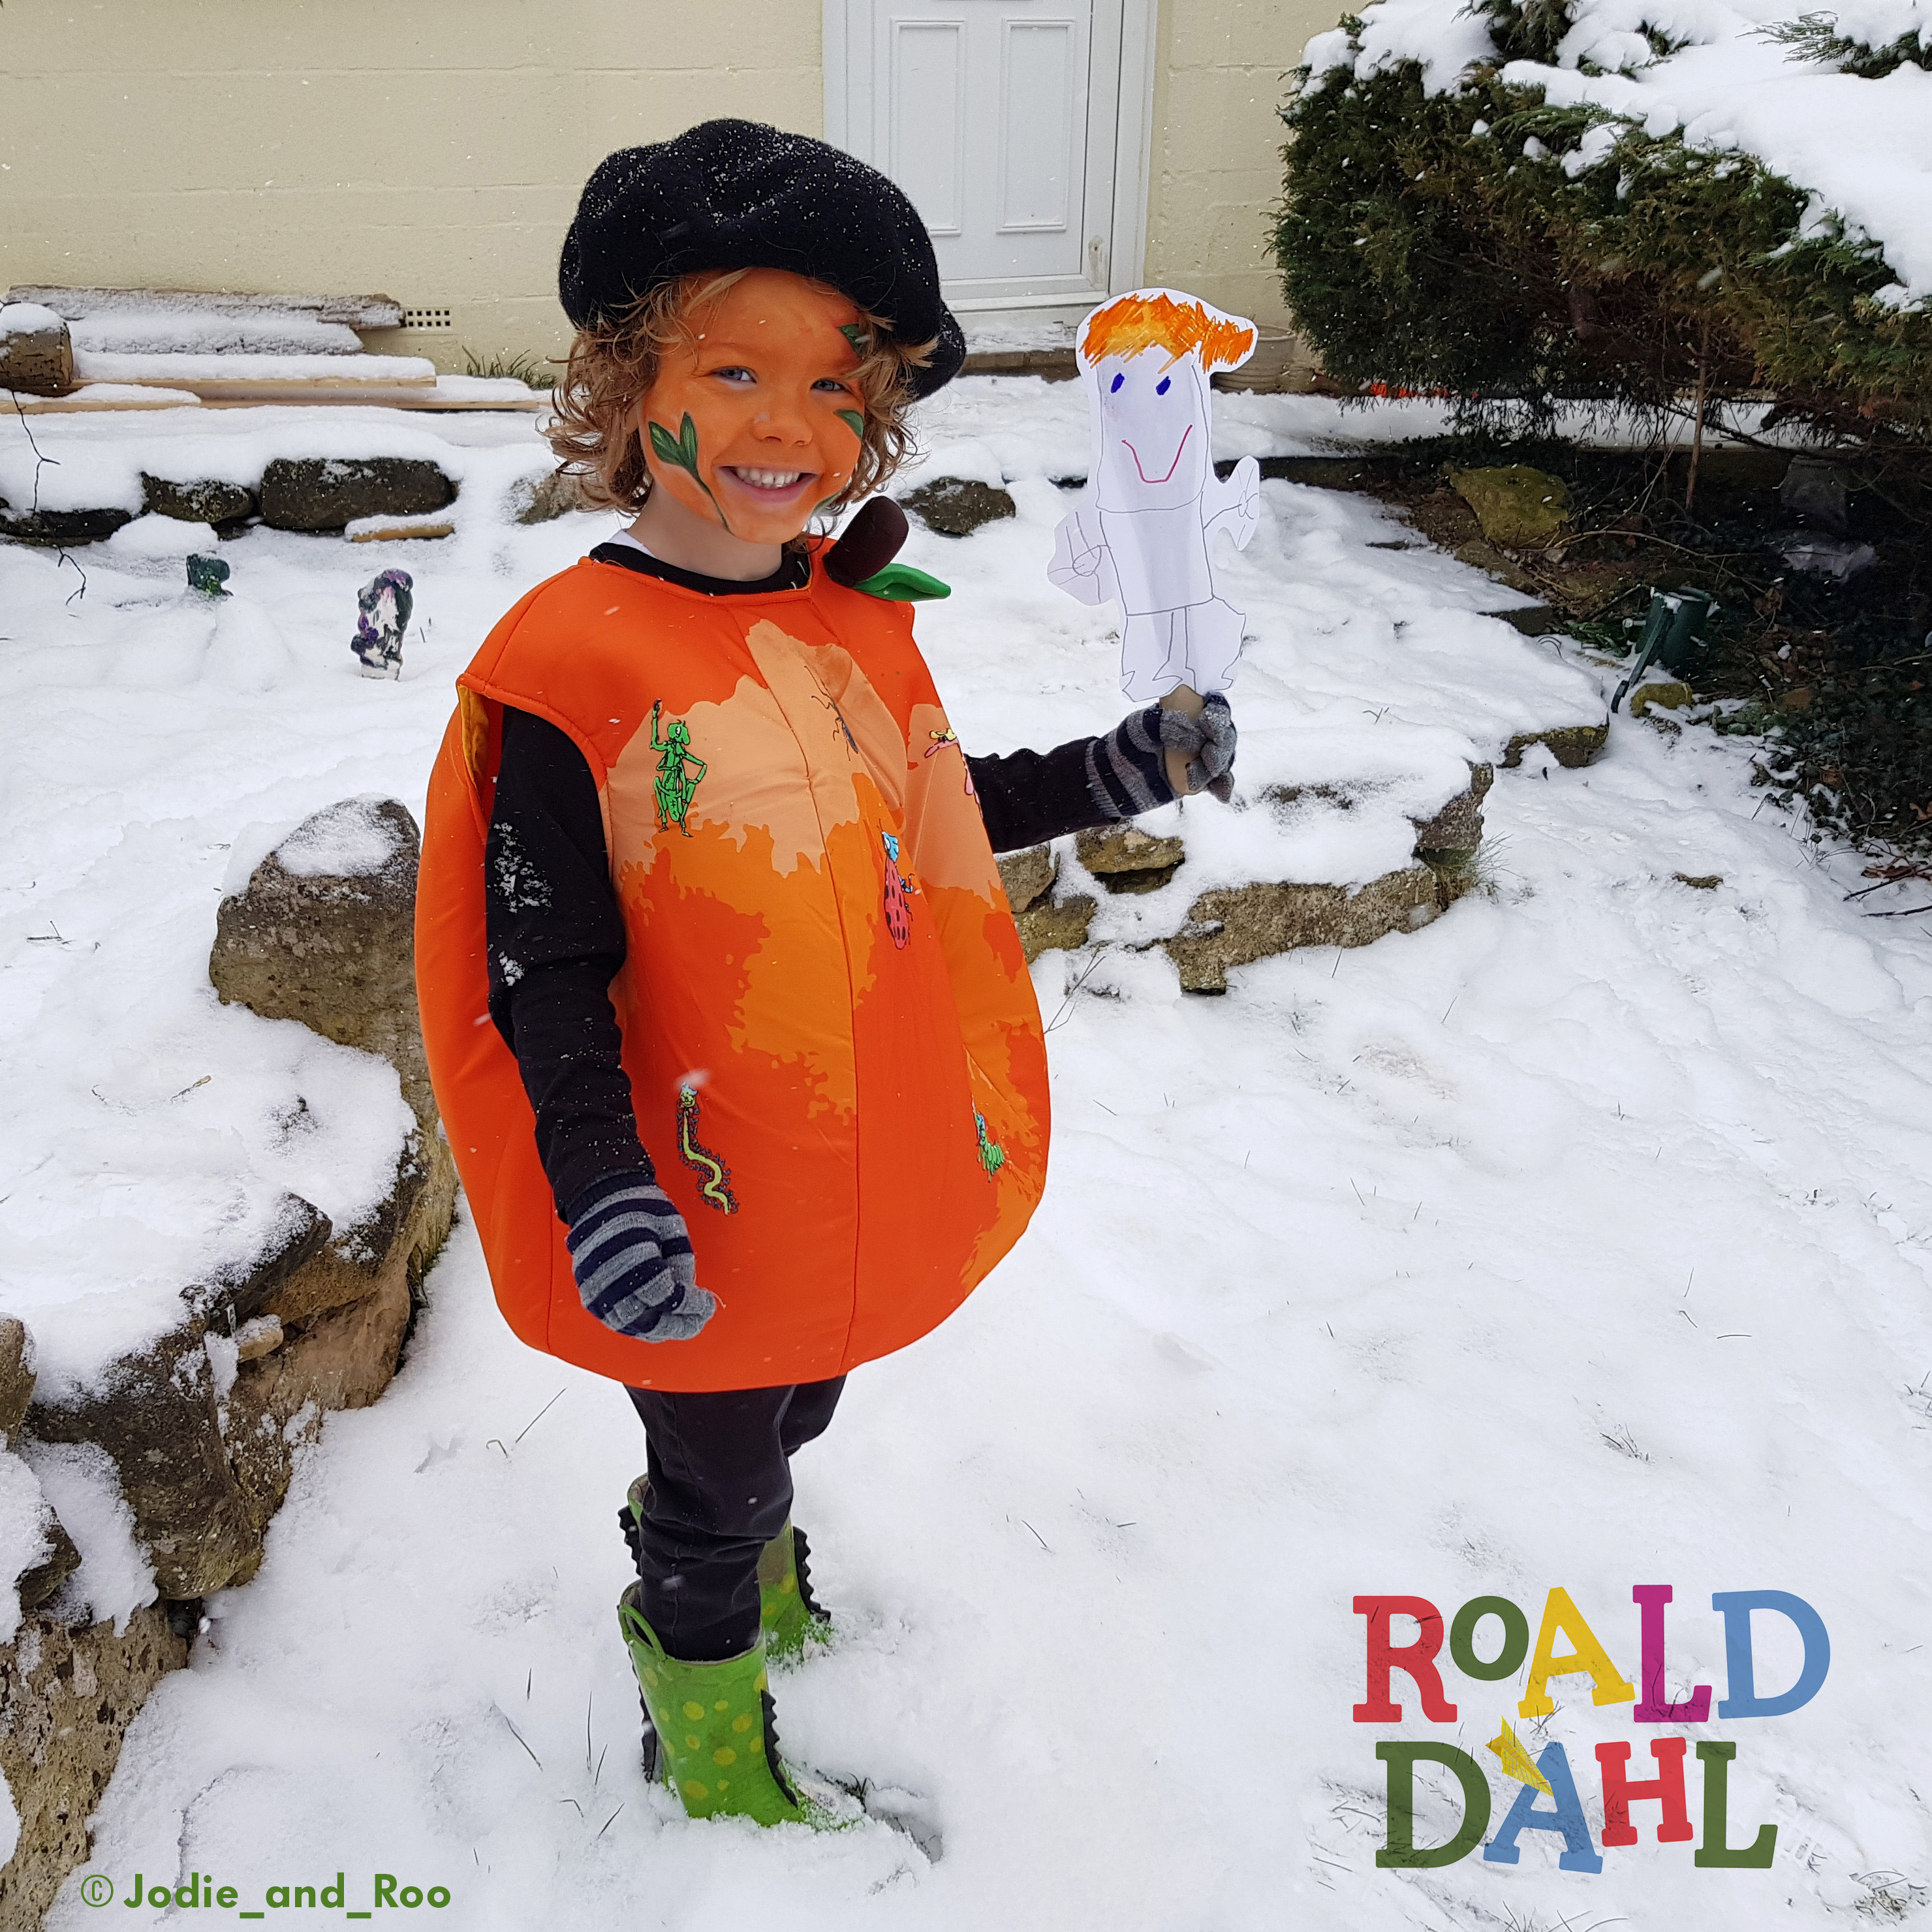 Roald Dahl celebrates biggest World Book Day ever!